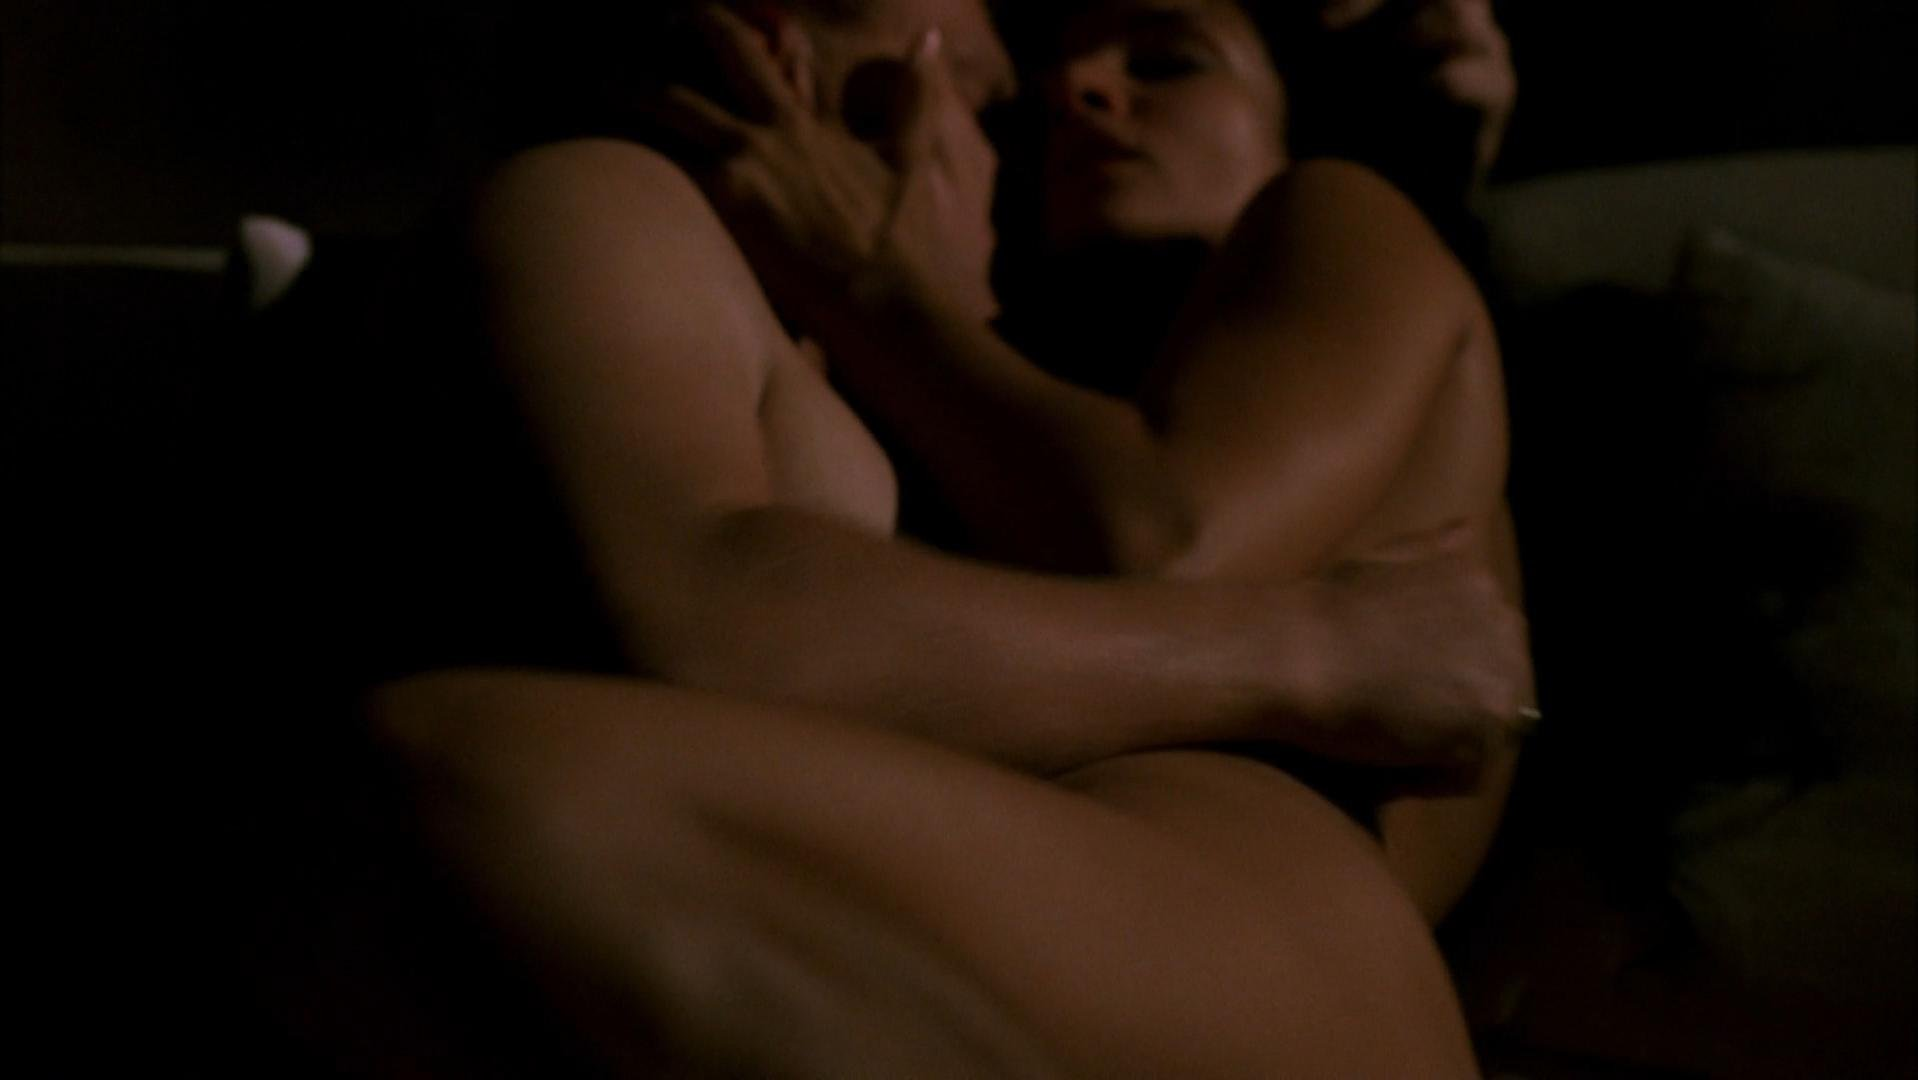 heath graham topless sex scene boobs nipples